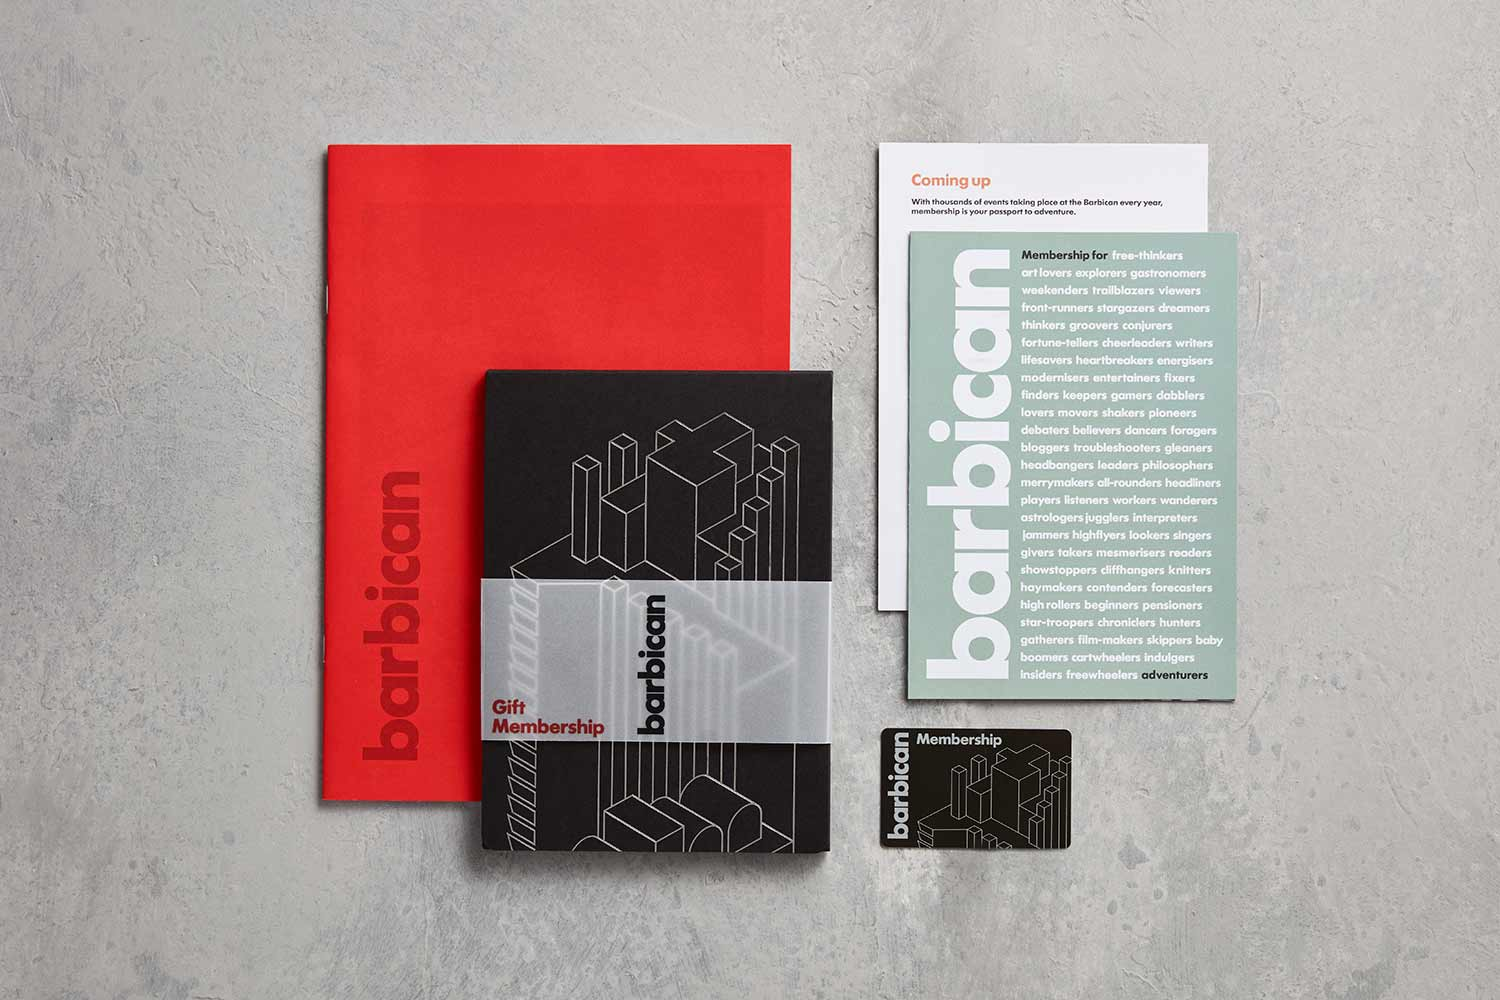 BARBICAN-MEMBERSHIP, Best Experience Day Gifts